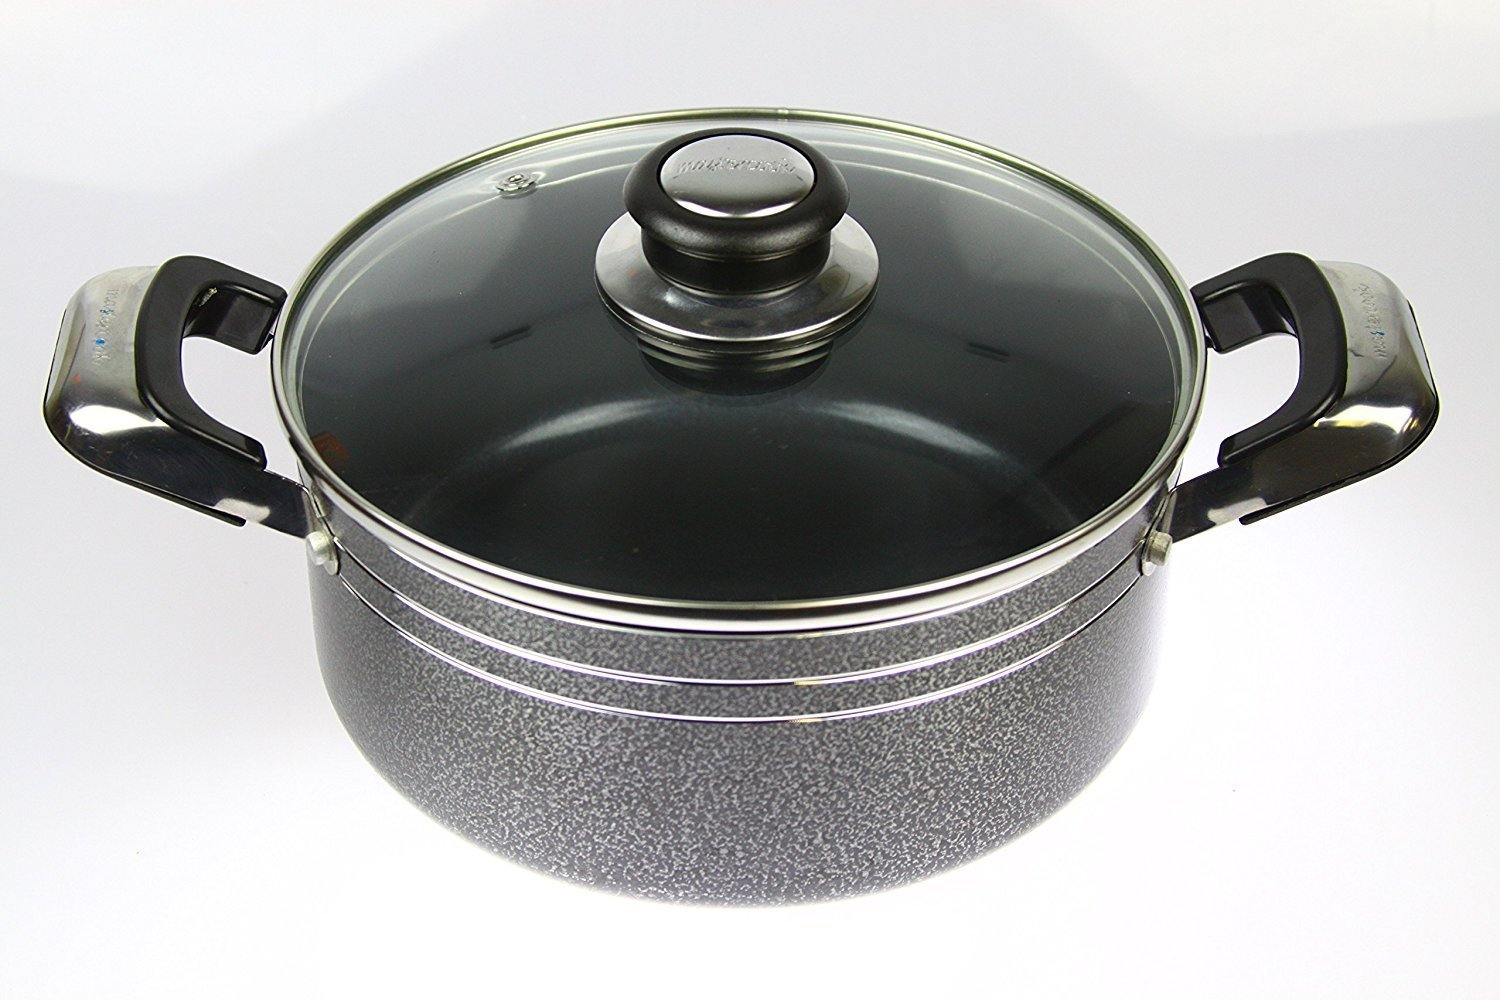 Mastercook Heavy Duty Non Stick Ceramic Coated Casserole With Glass Lid (20cm)